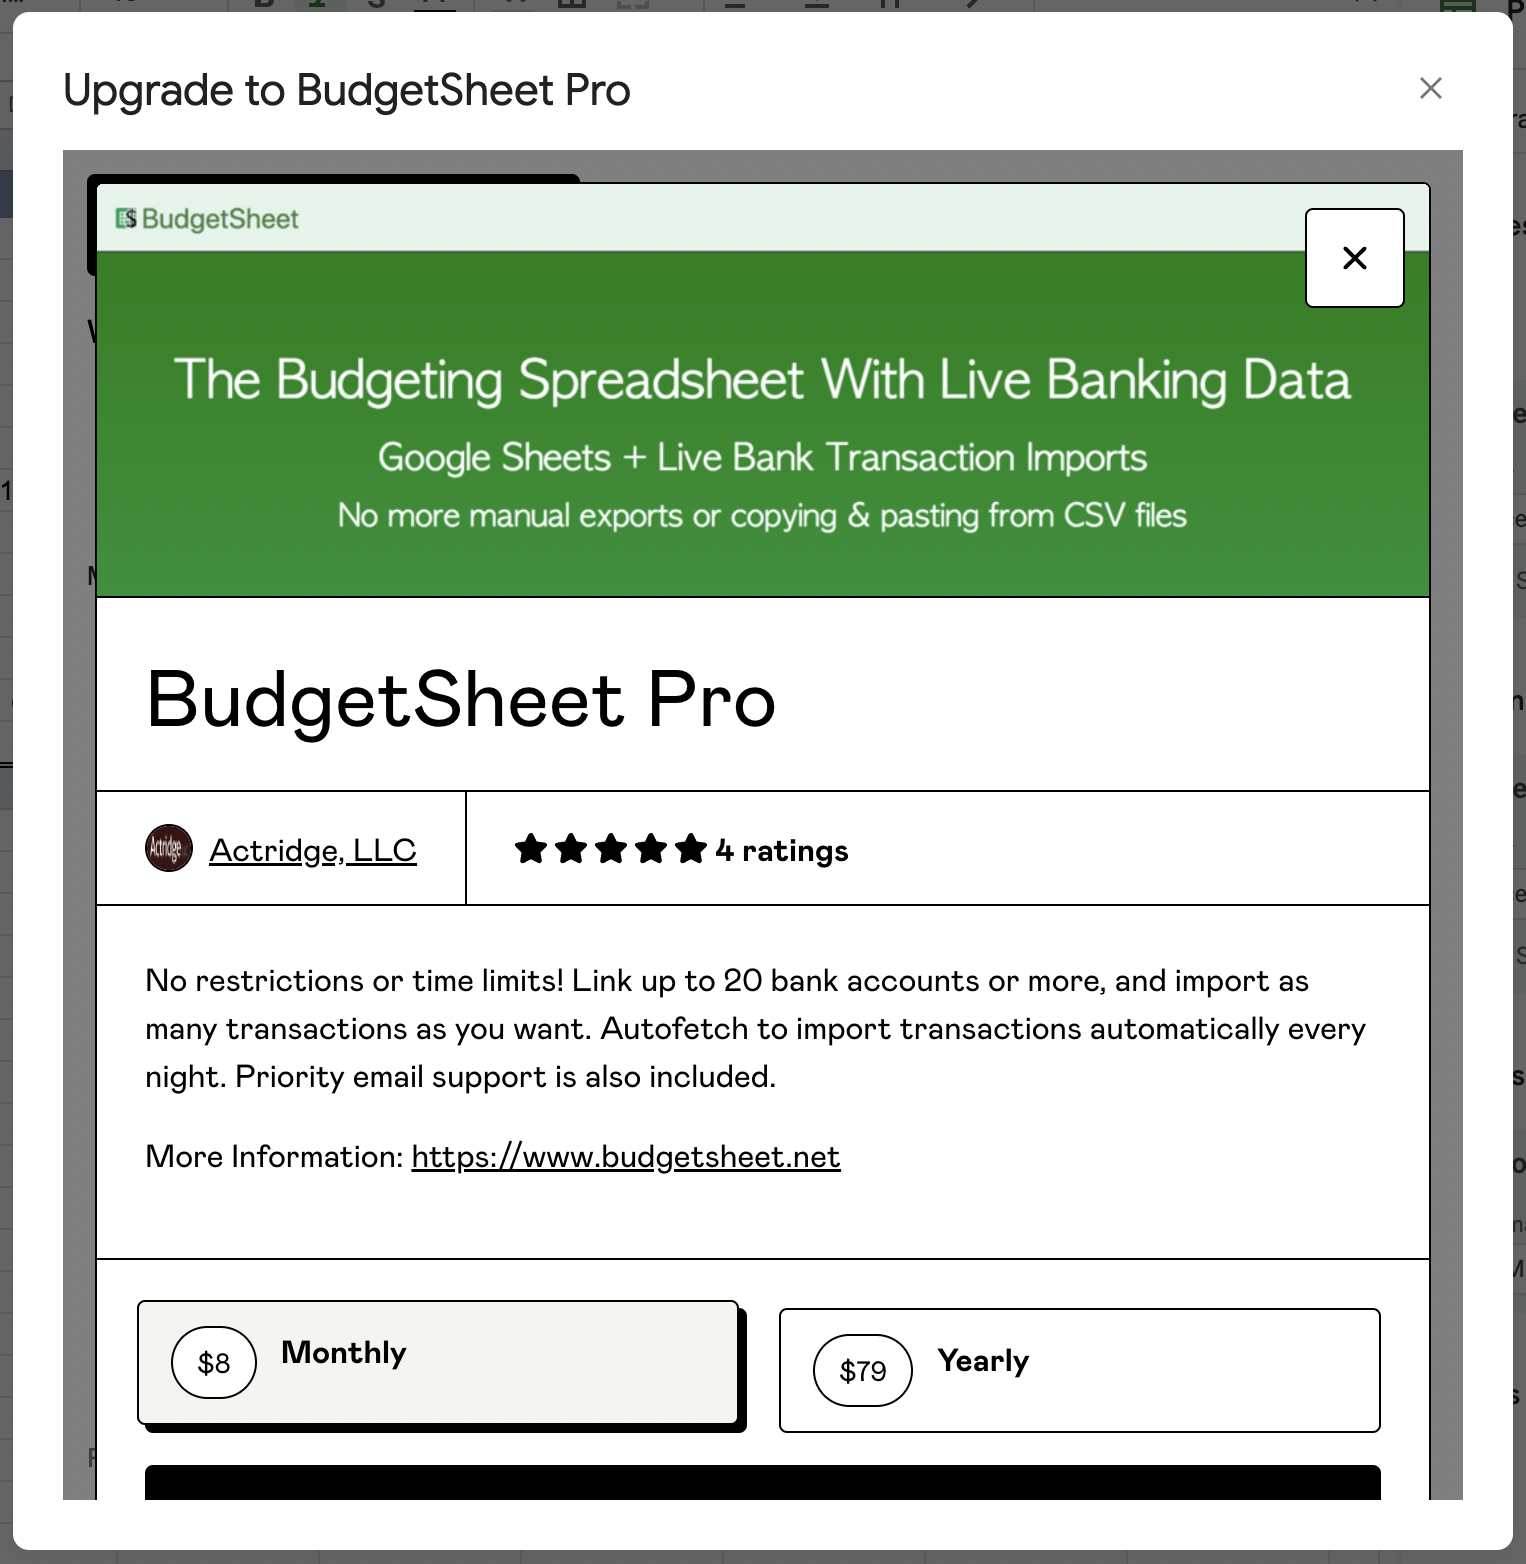 Upgrade to BudgetSheet Pro Payment Dialog (powered by Gumroad)